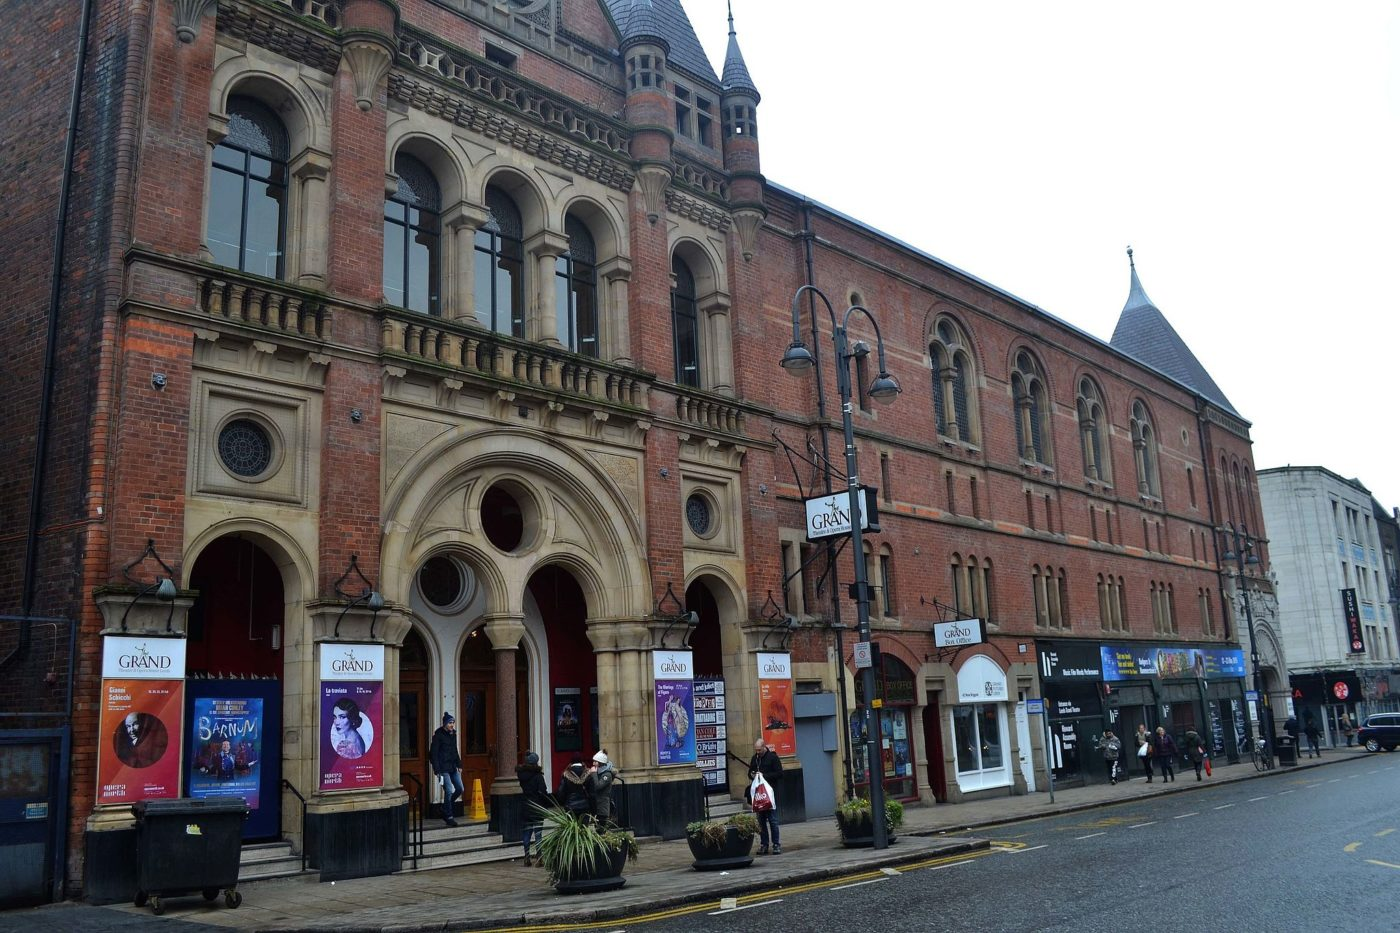 Leeds Grand Theatre and Opera House exterior